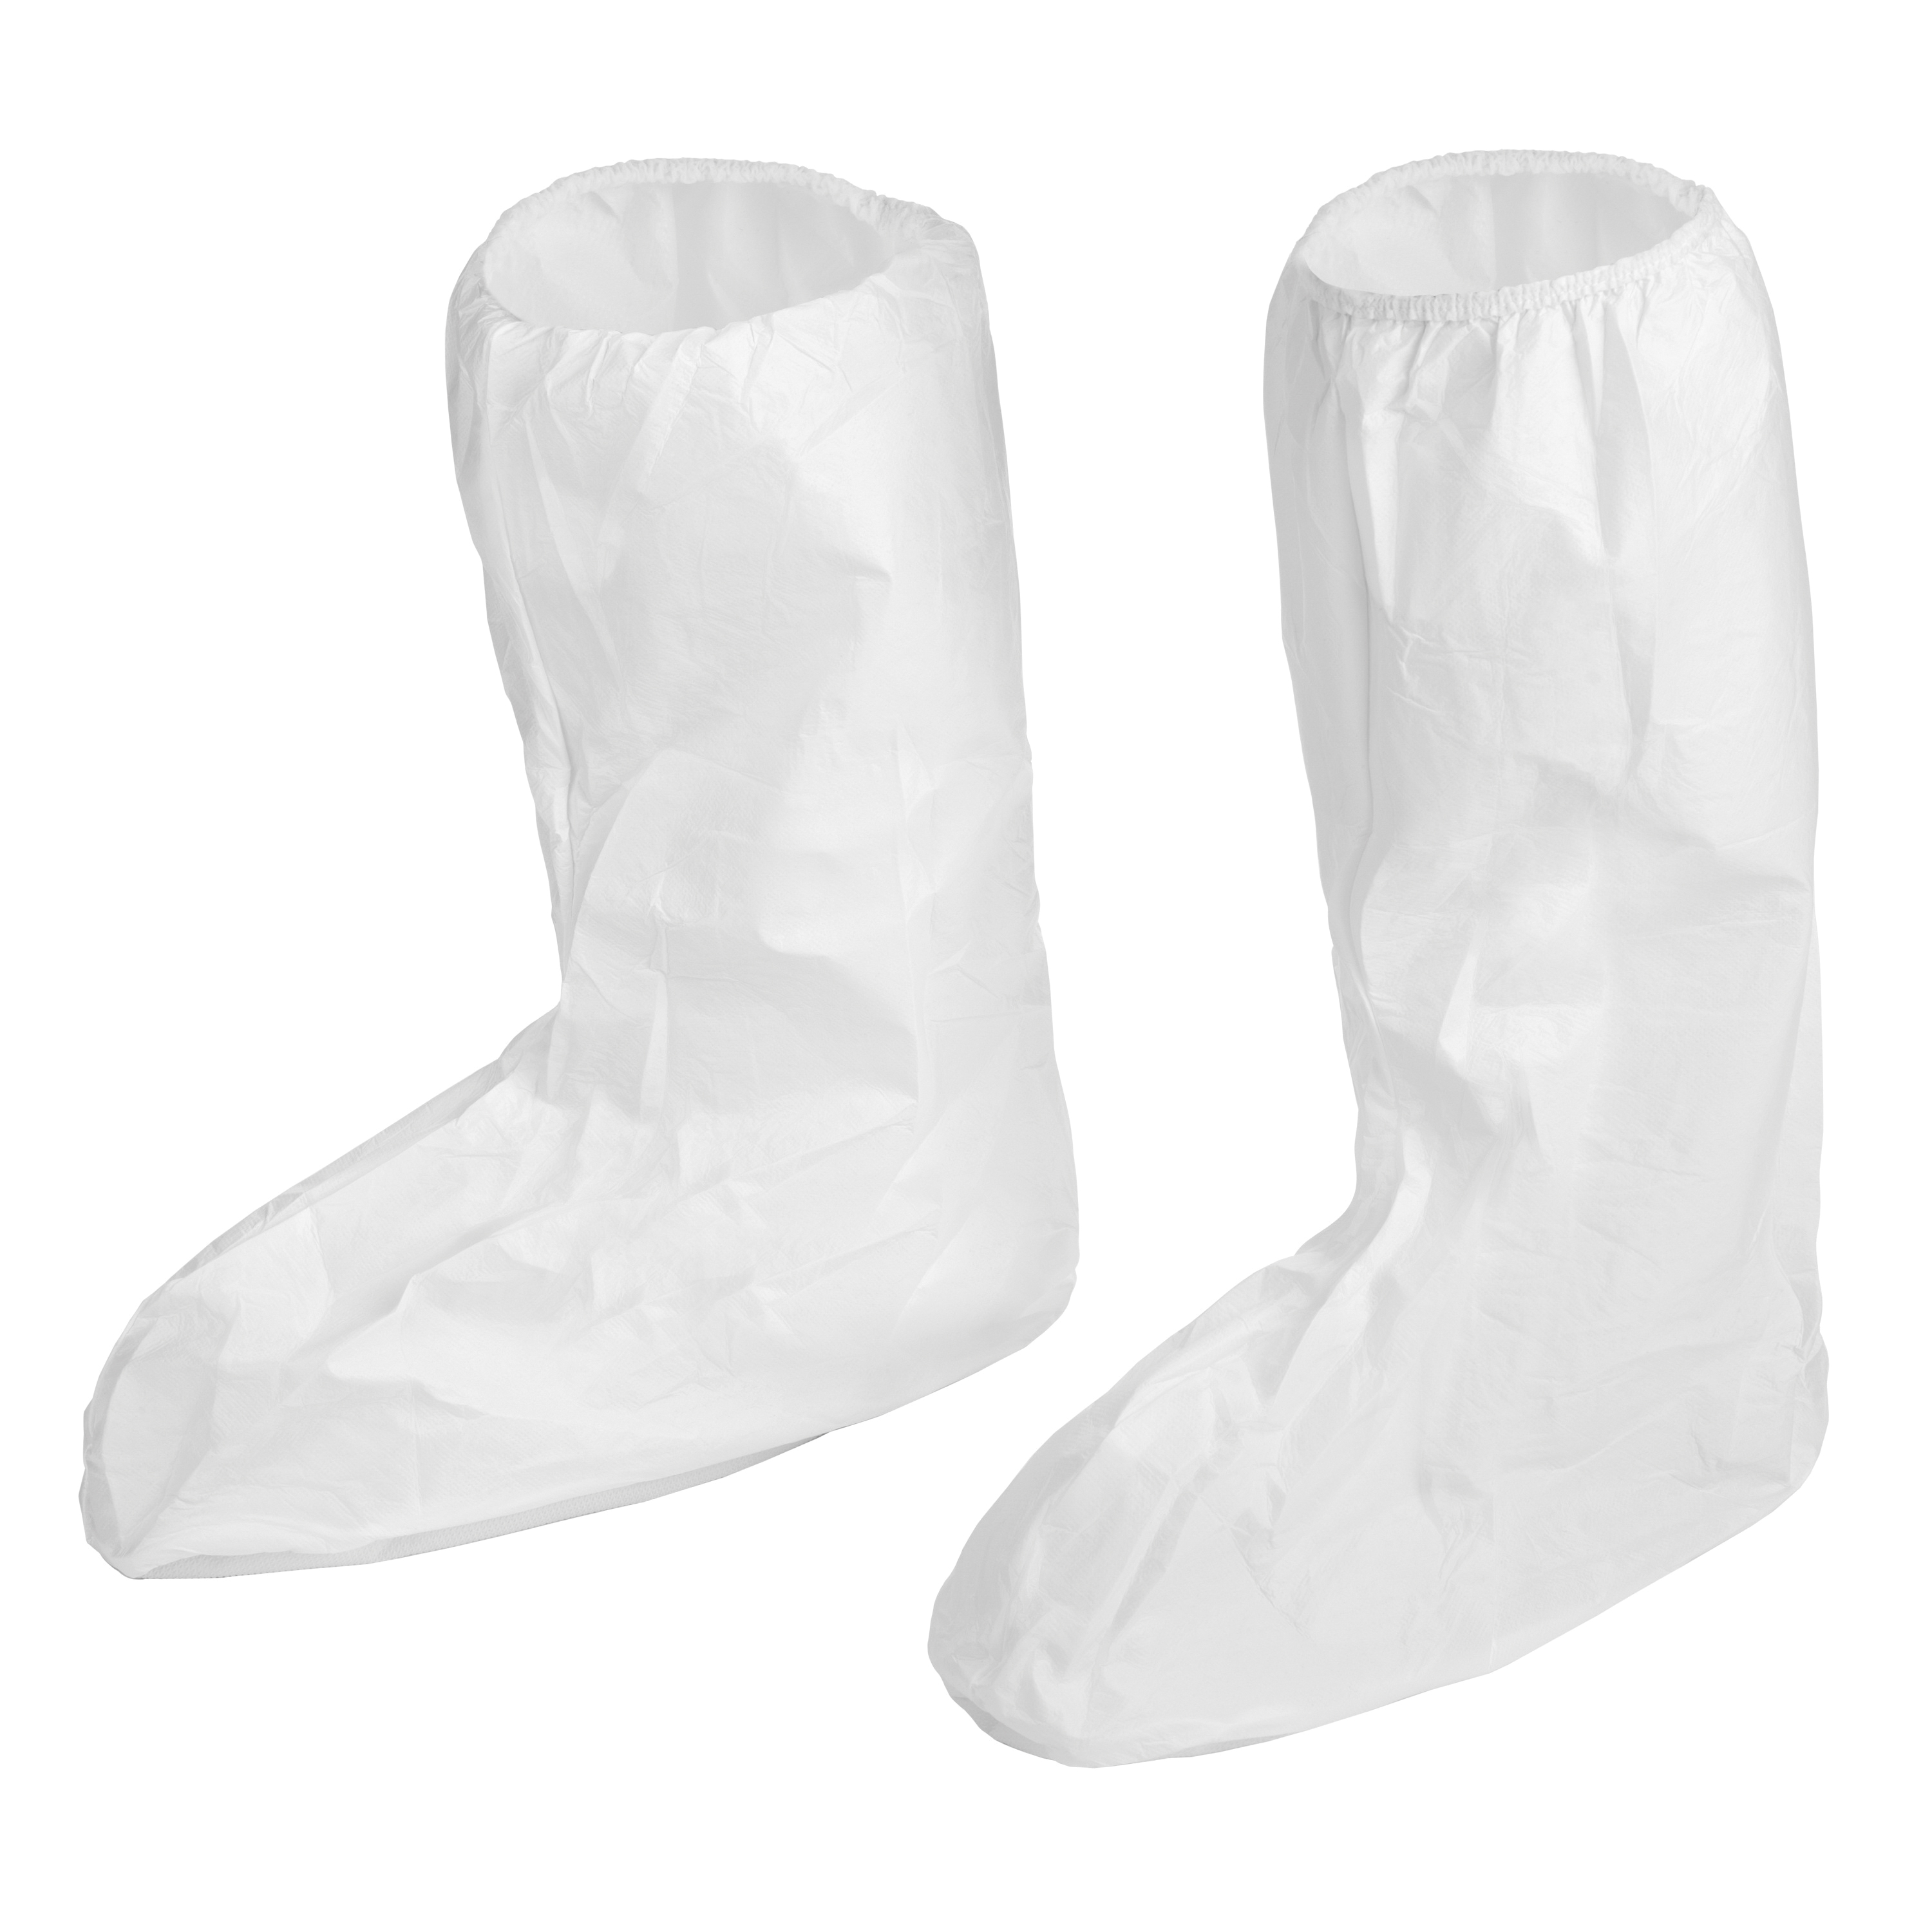 Lakeland® CTL903-2X Disposable Non-Skid Boot Cover, 2XL Fits Shoe, White, Elastic Ankle Closure, MicroMax® NS Outsole, Resists: Chemical and Splash, Specifications Met: ASTM D3776, D5034, D1117, D3787, D737, F903, EN1149-5:2006